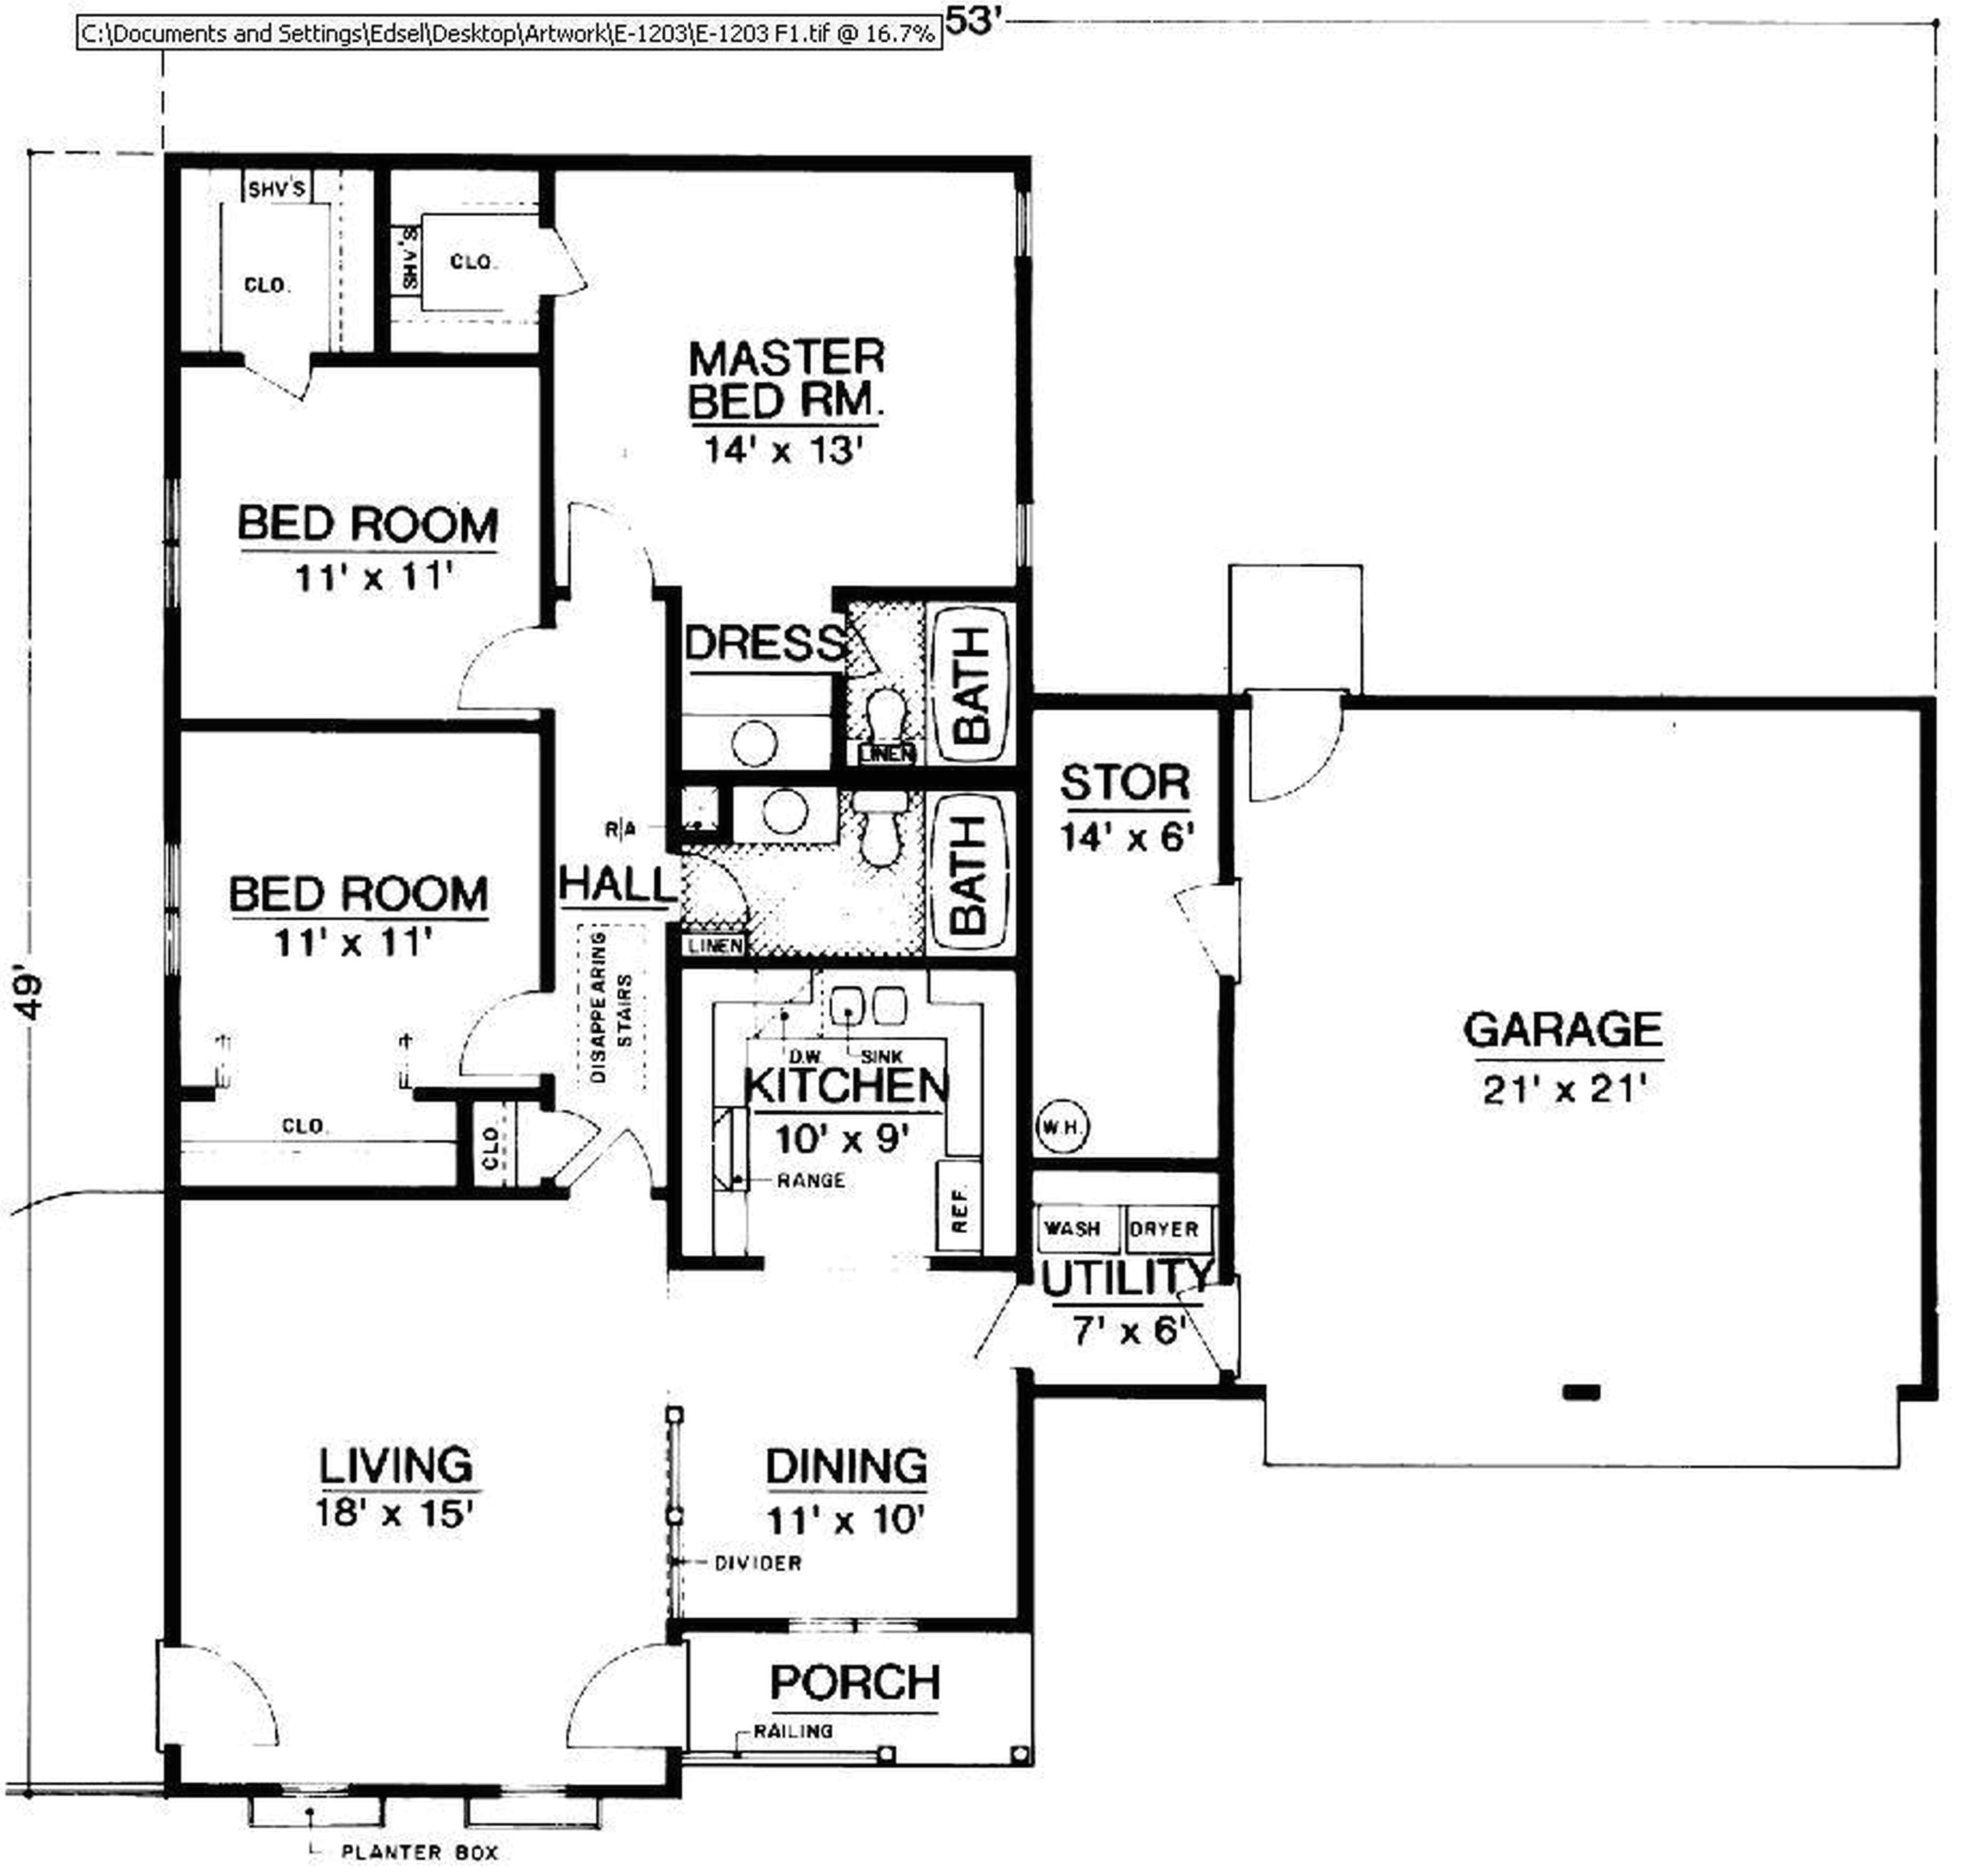 1 bedroom mobile home floor plans homes for rent 2018 and enchanting plan remarkable inside greatest tiny house photos best idea in images